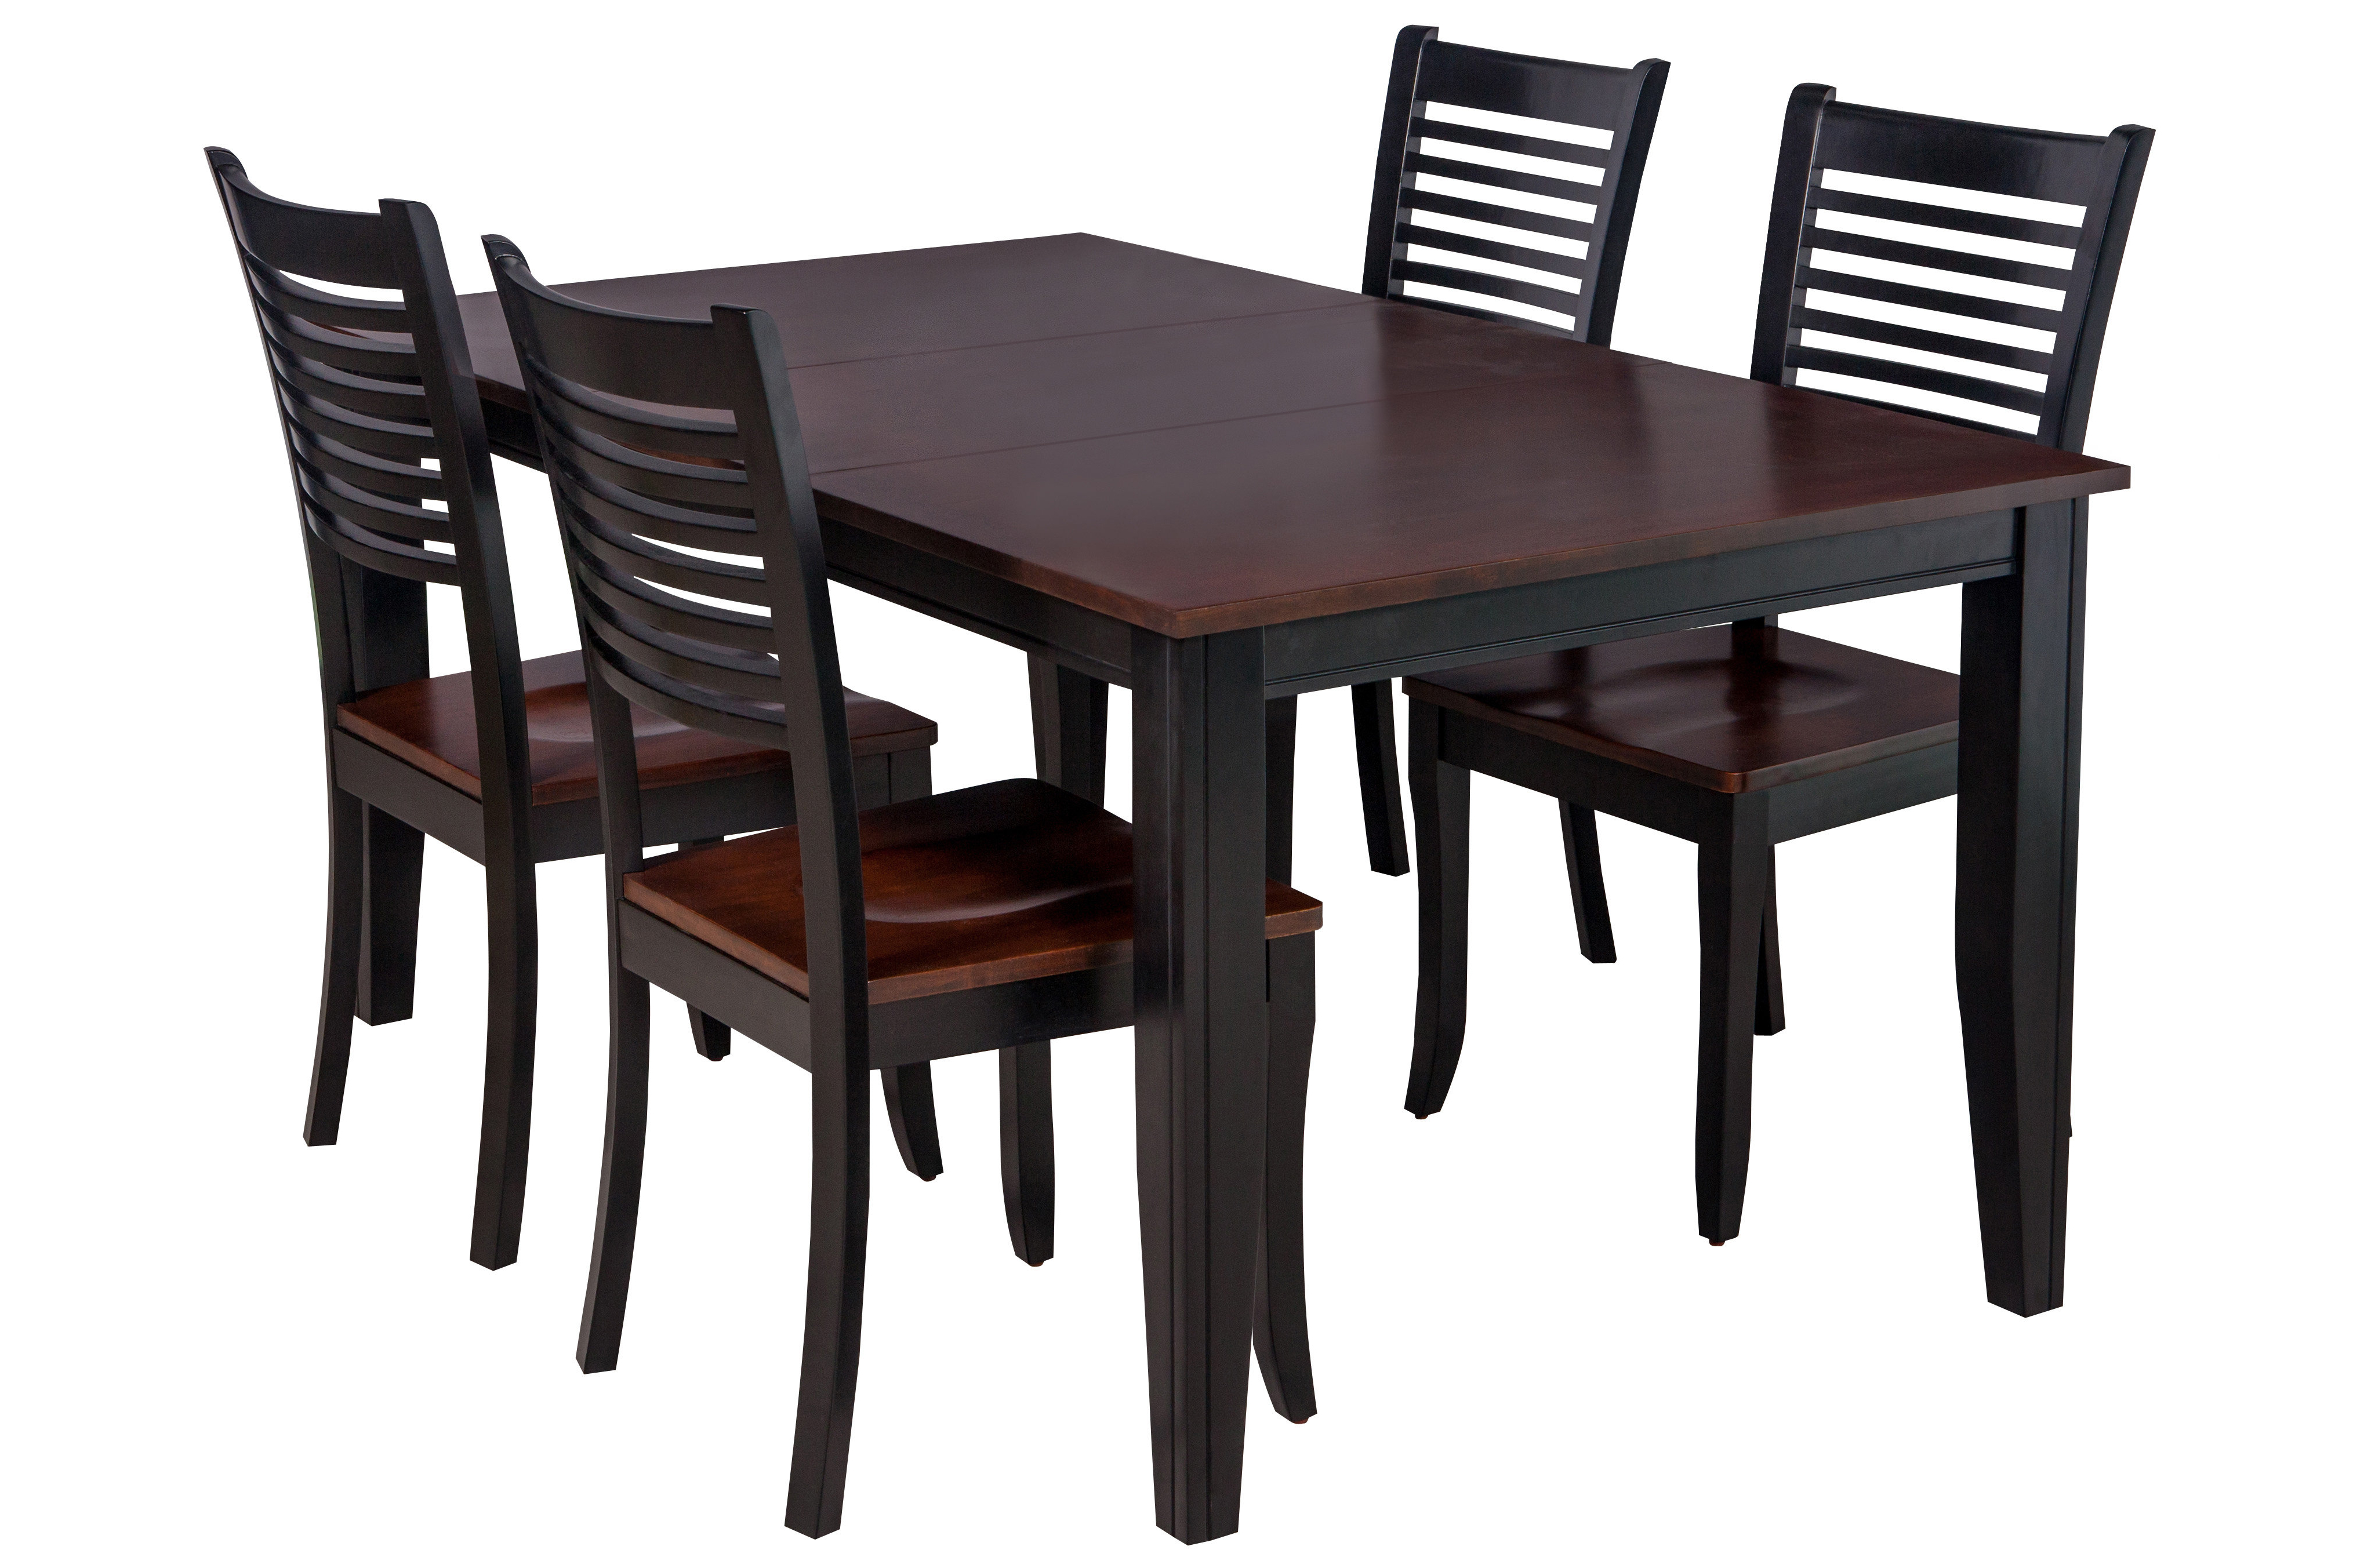 Aden 5 Piece Solid Wood Dining Set With Popular Adan 5 Piece Solid Wood Dining Sets (set Of 5) (Gallery 4 of 20)